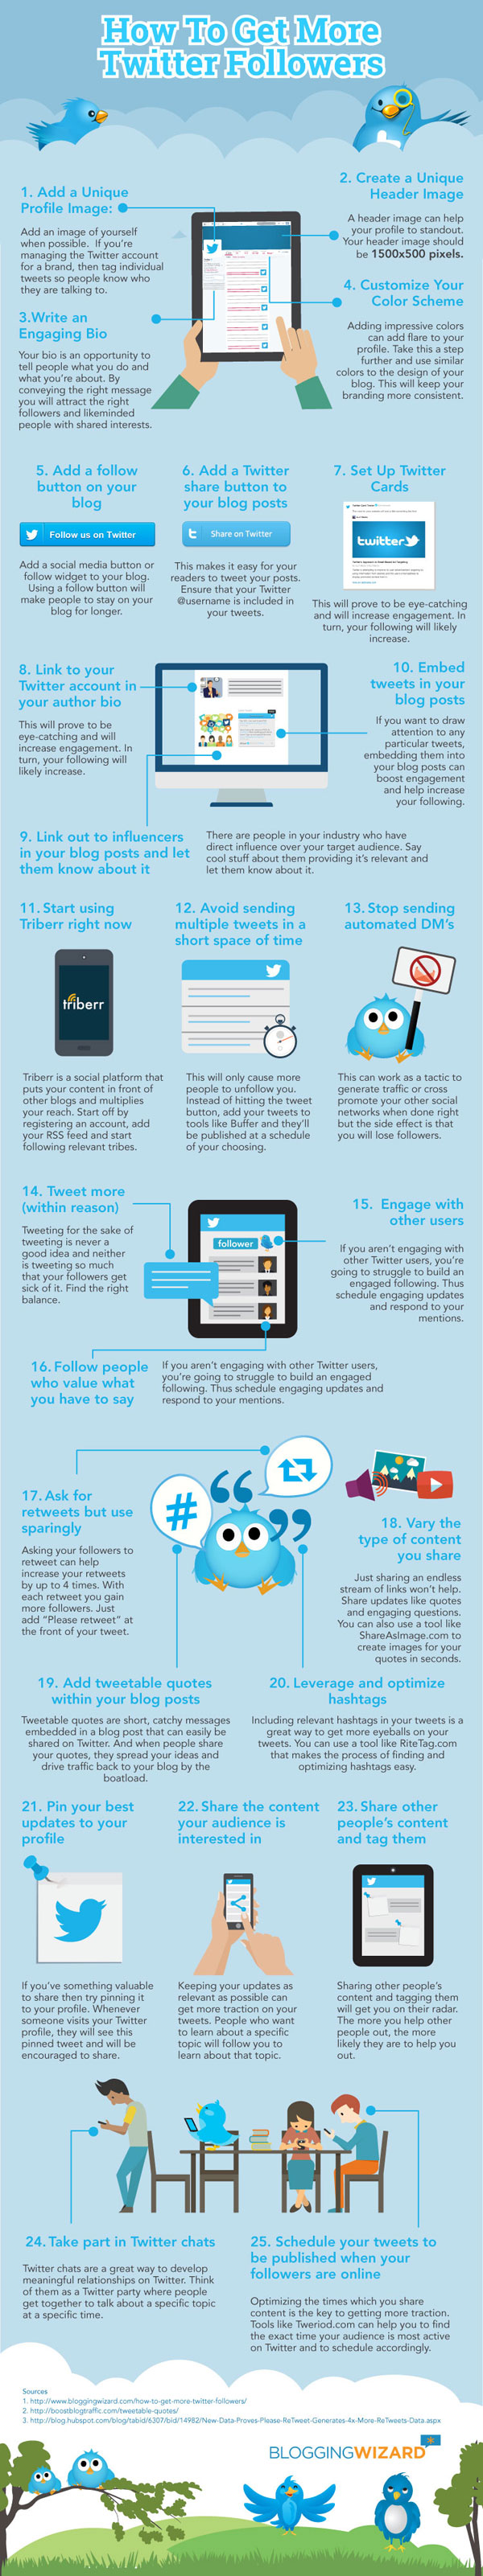 Smart-Ways-To-Grow-Your-Twitter-Following-Fast-Small